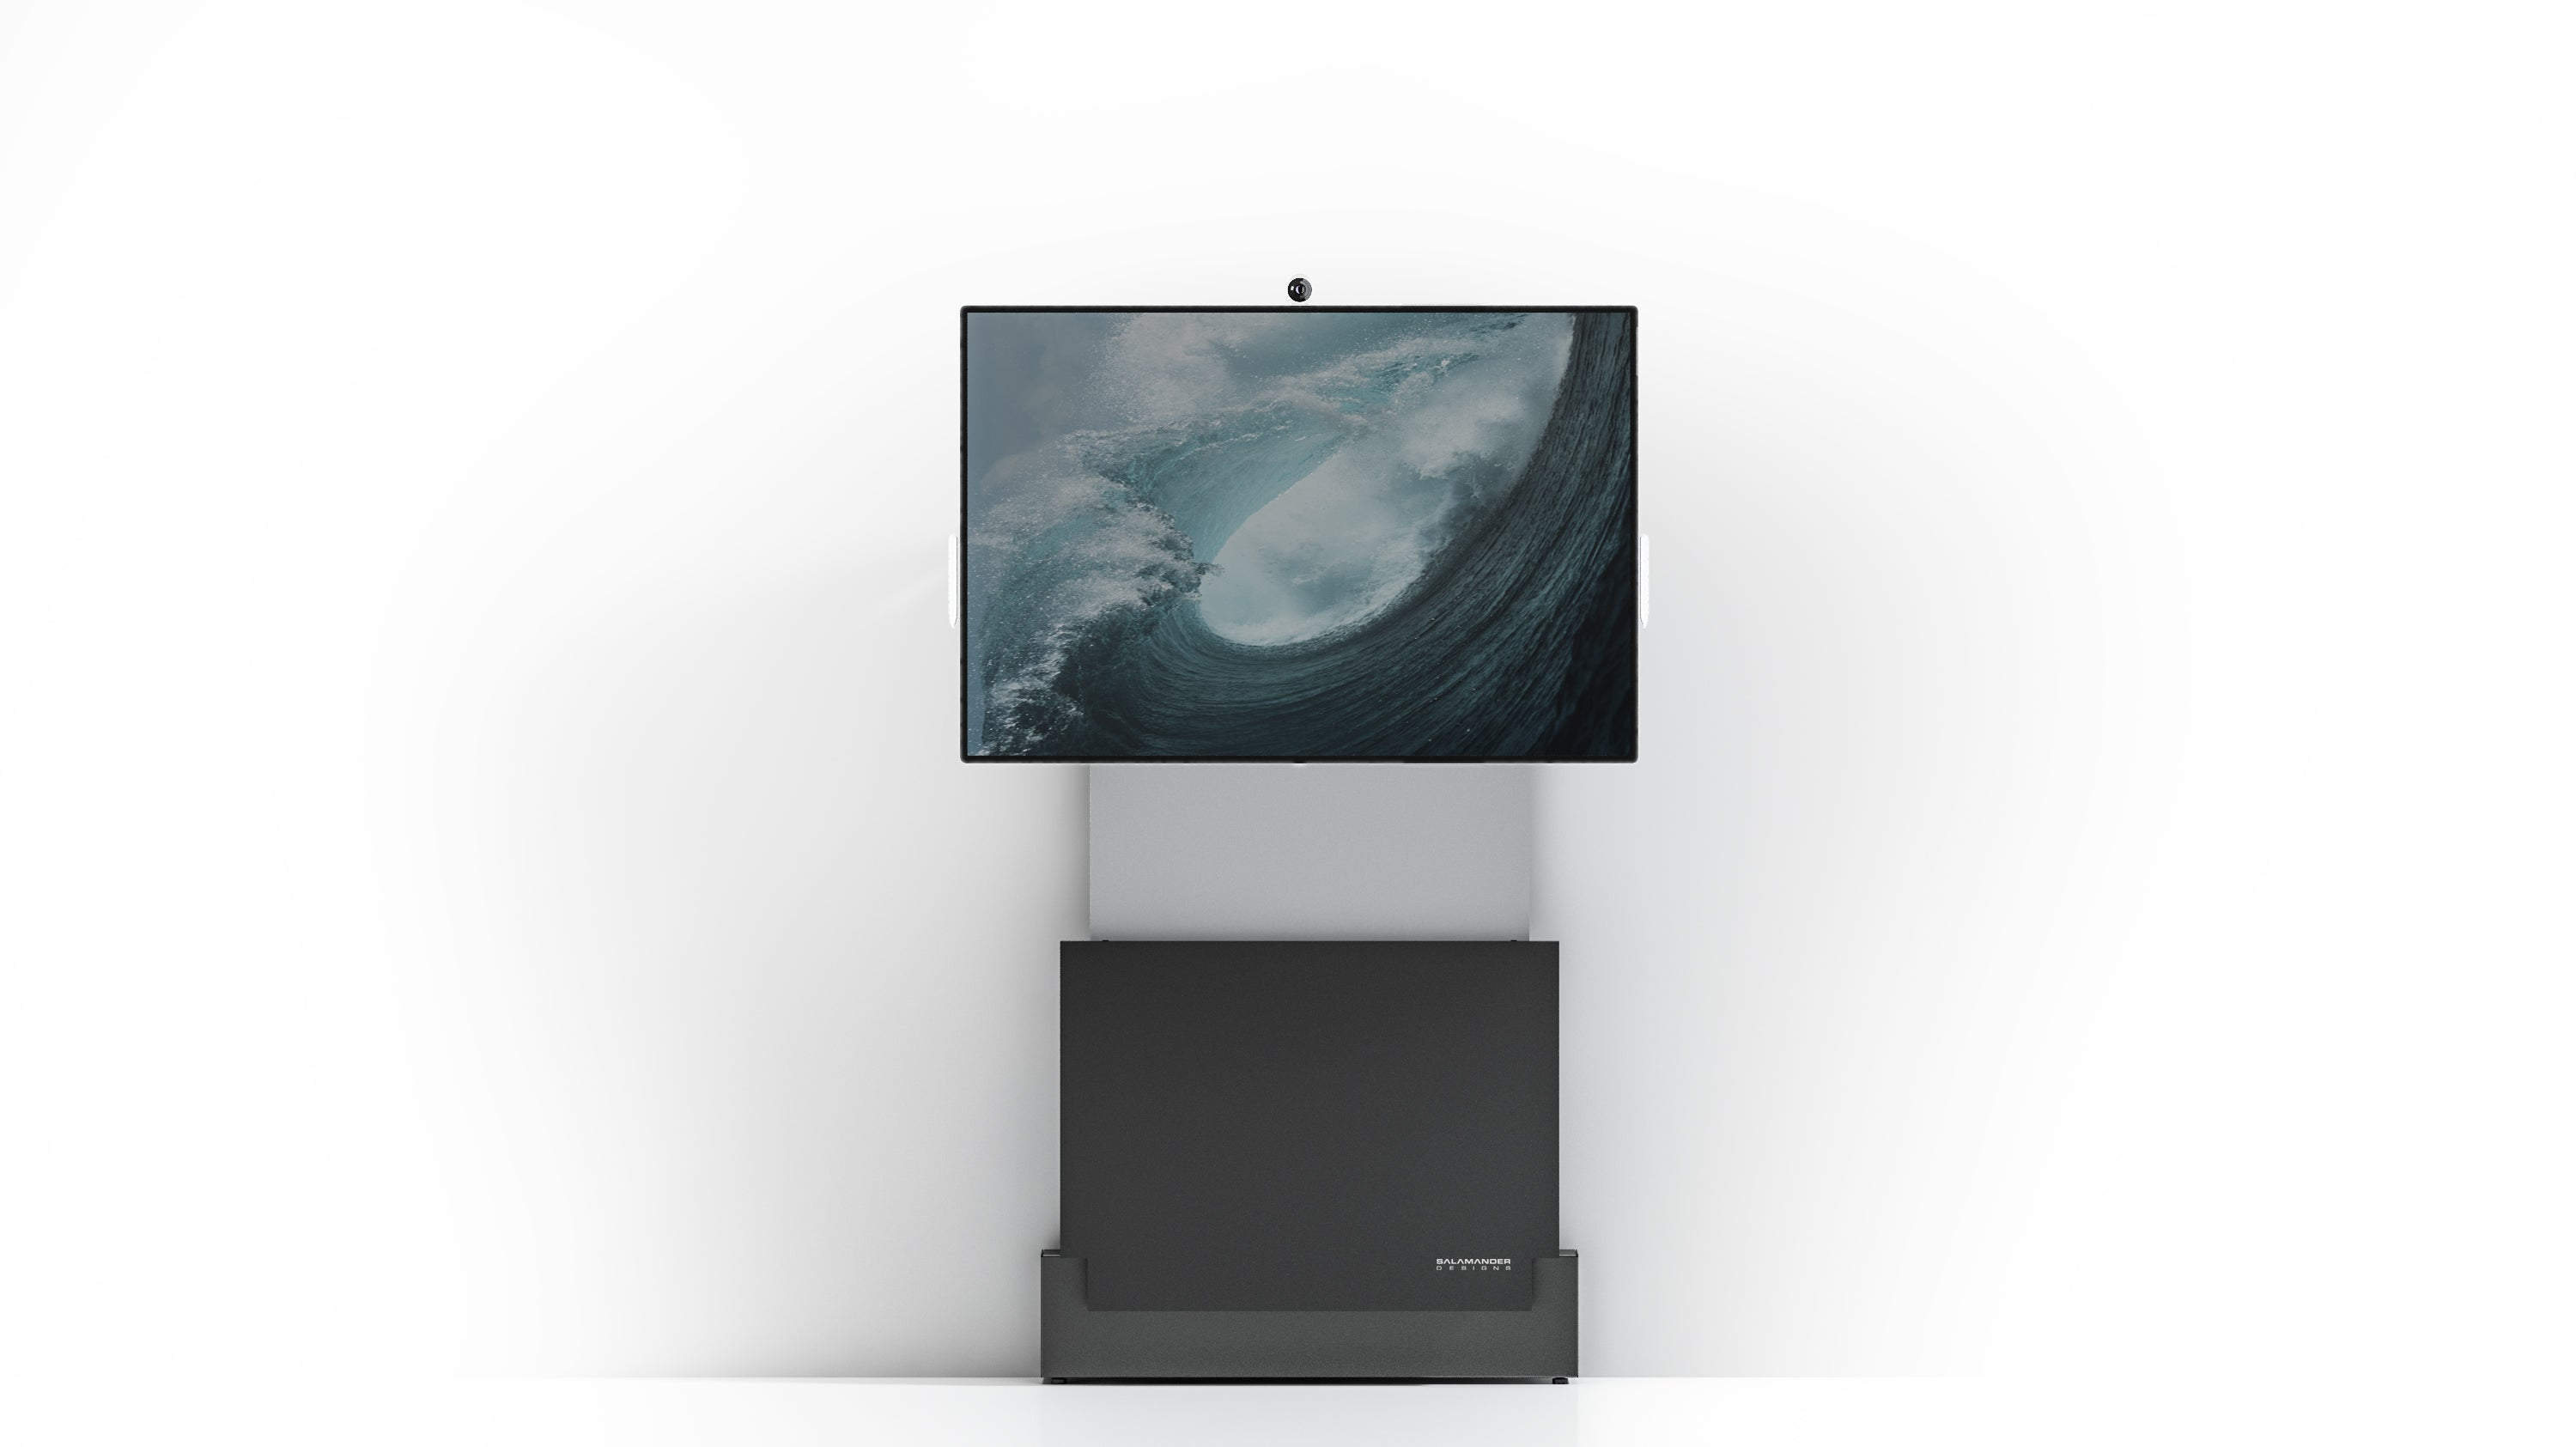 Electric lift Wall Stand for Microsoft Surface Hub 2s